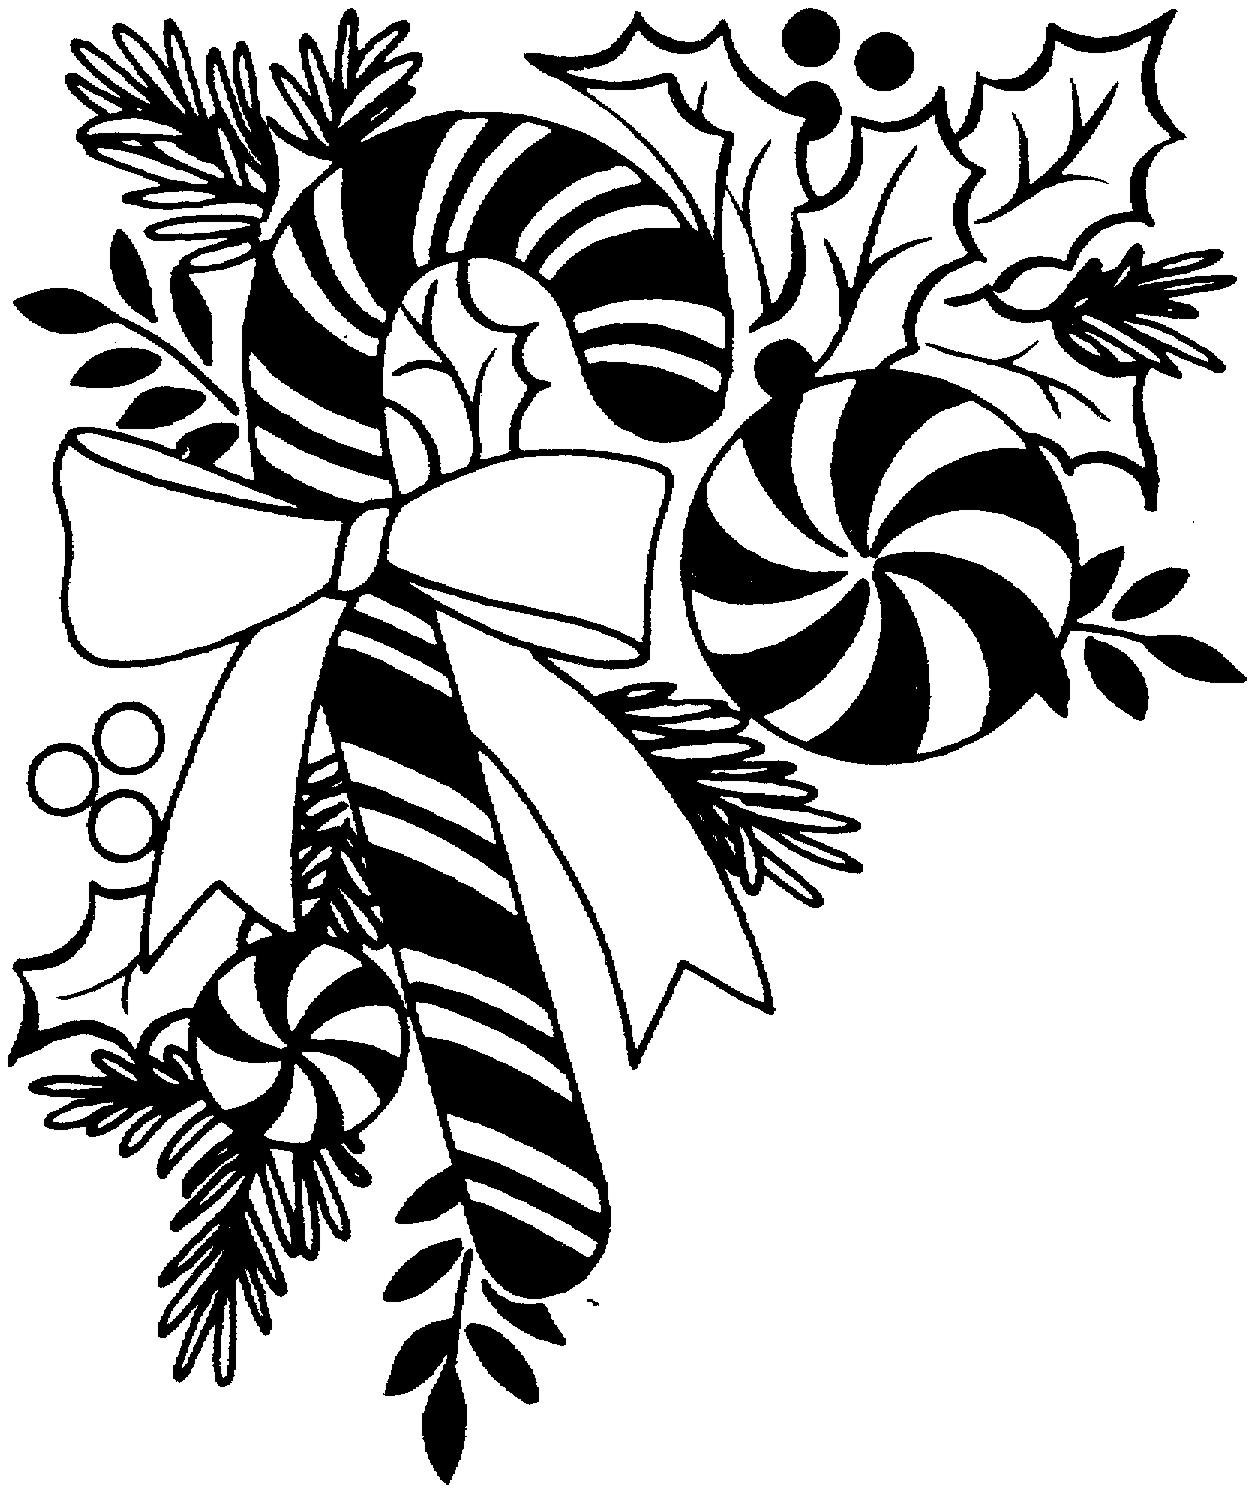 1254x1492 Black And White Christmas Clipart Borders